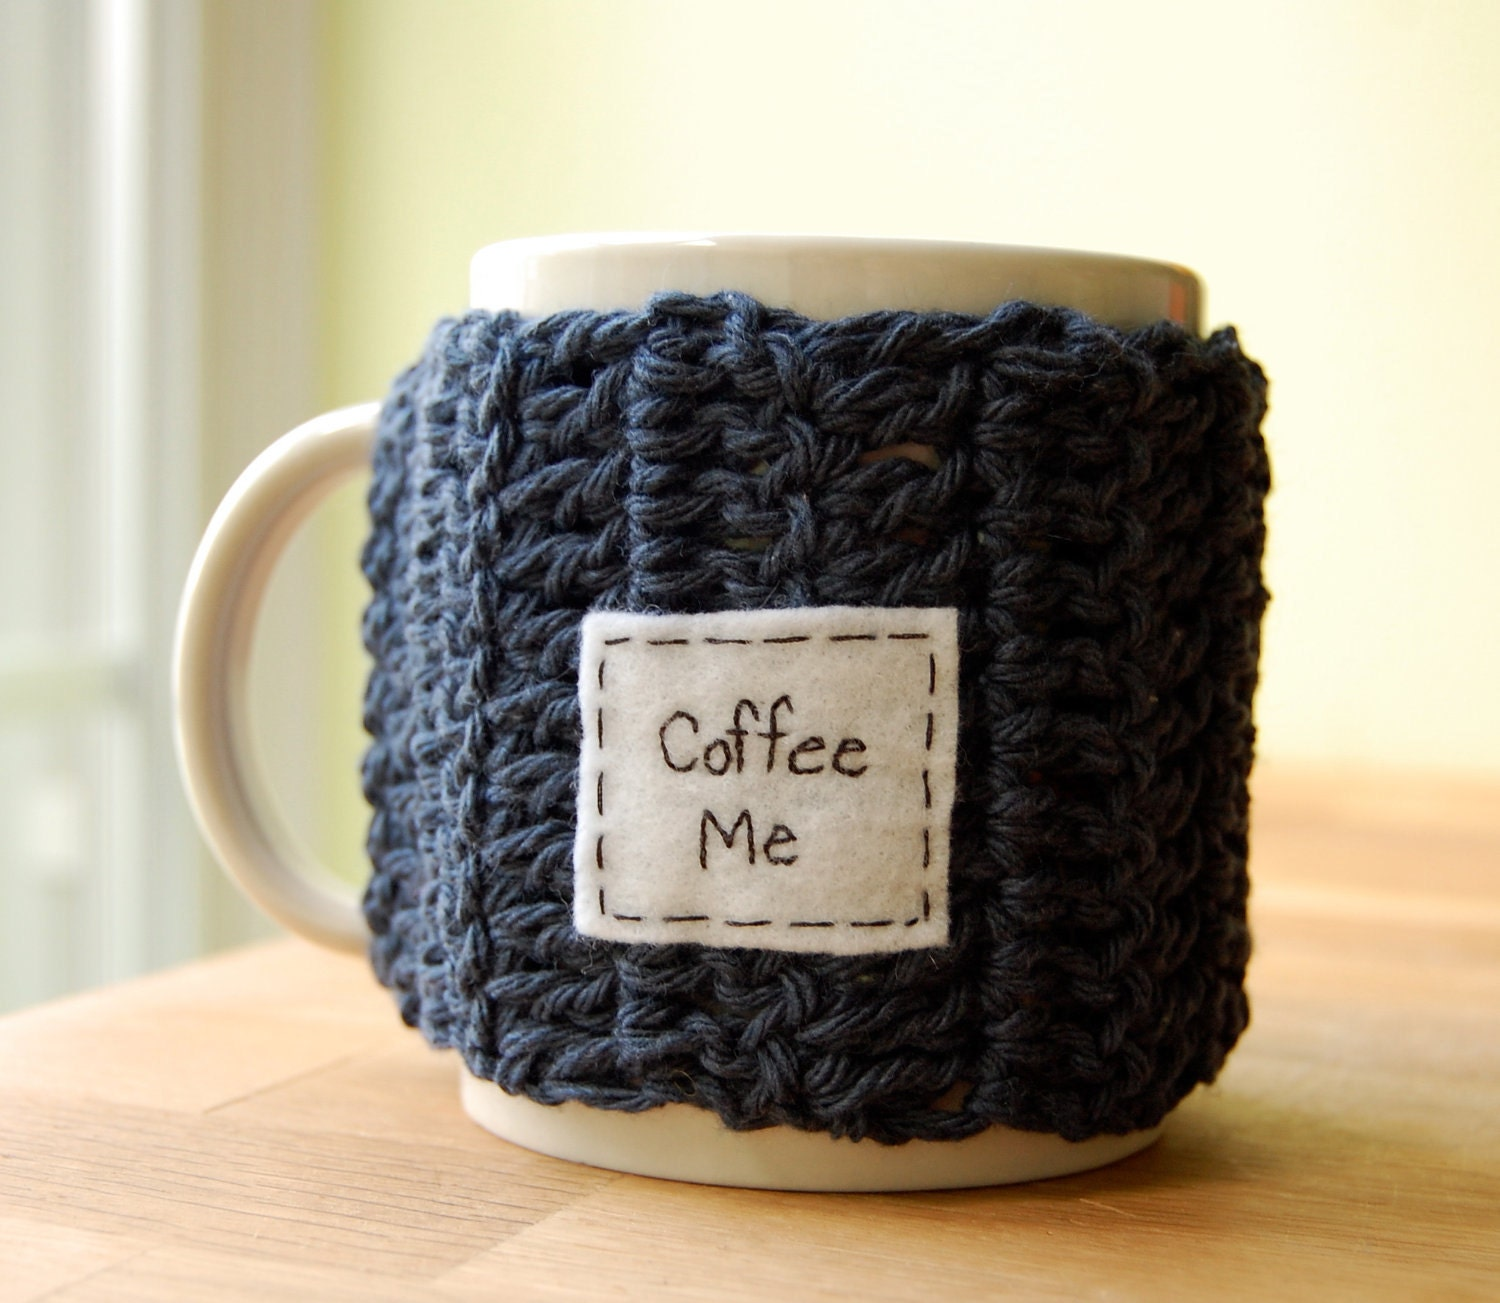 Coffee Me Mug Cozy Denim Crocheted Java Cup Cosy - Made to Order